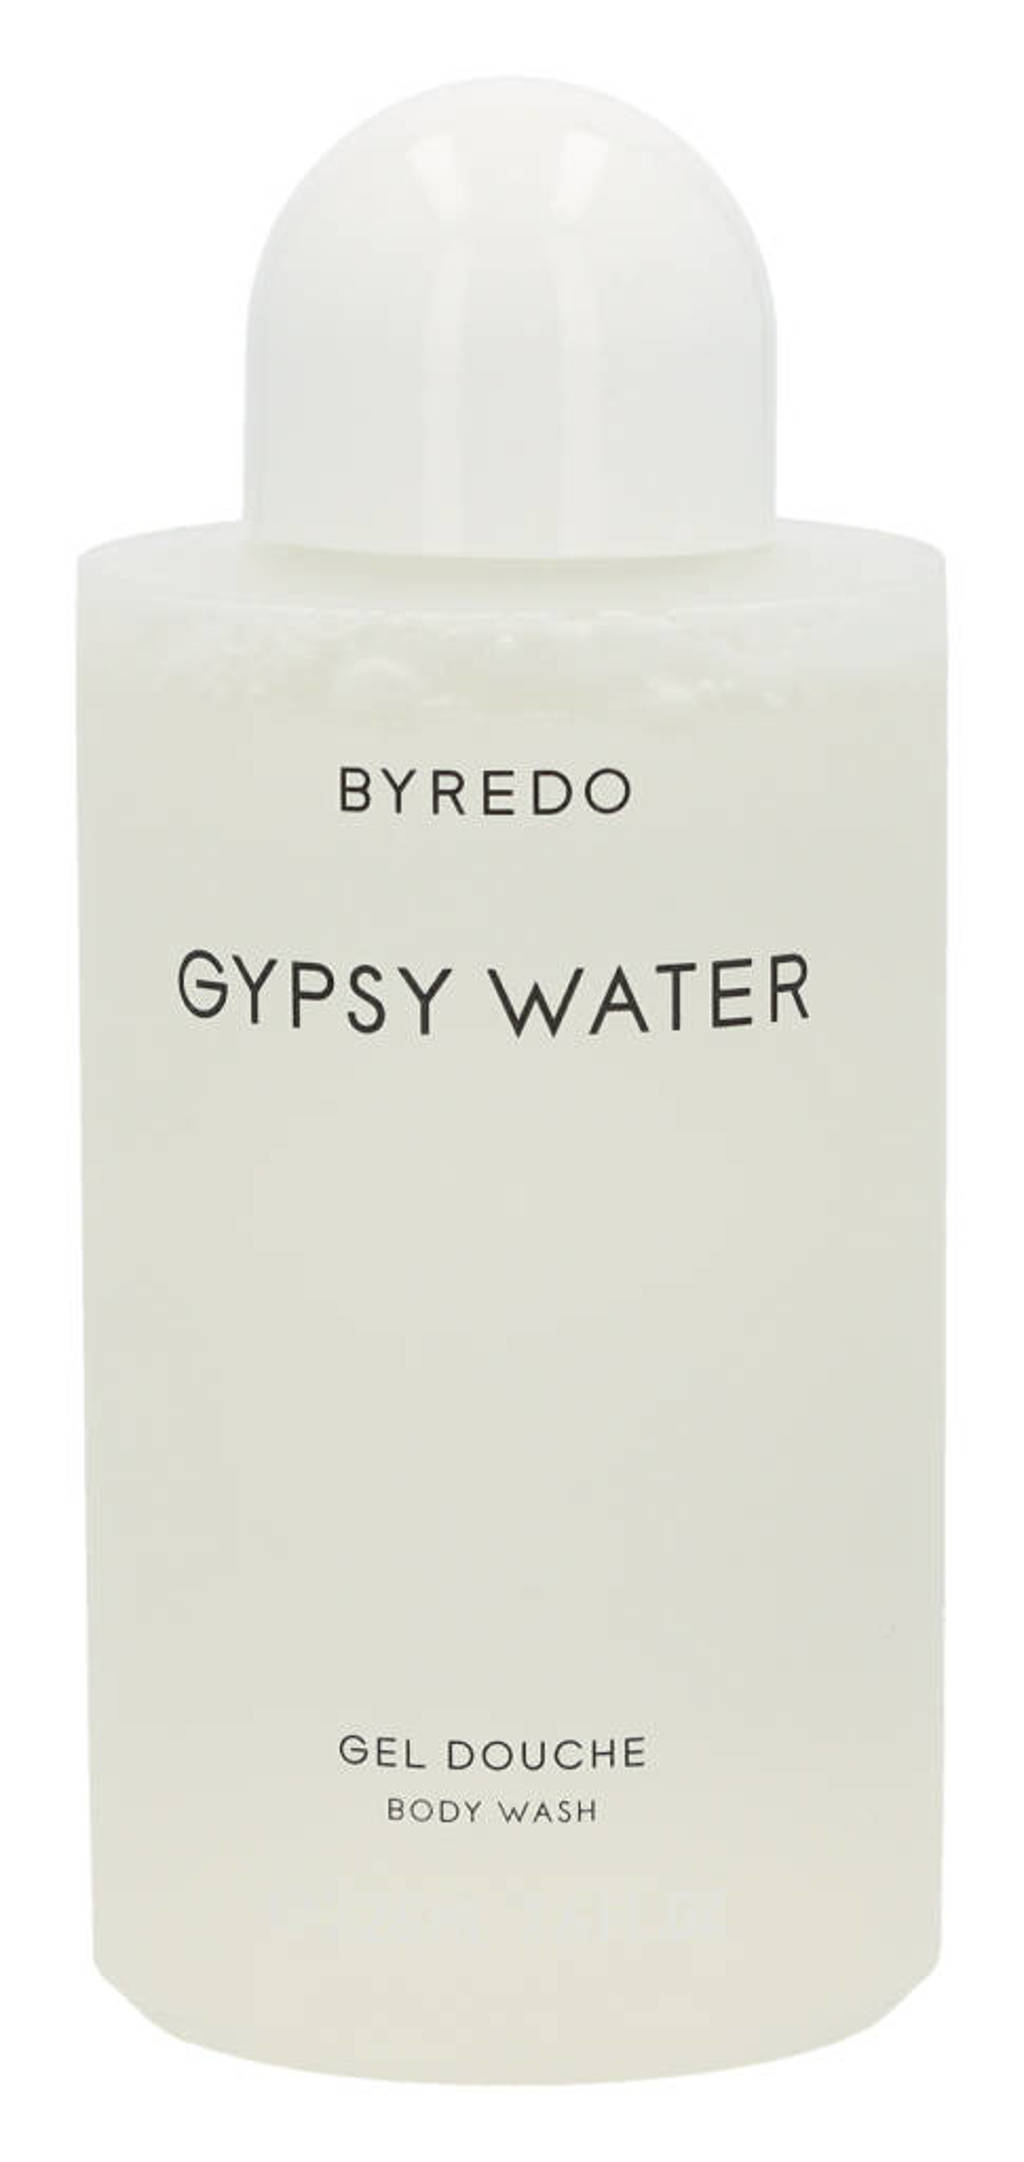 Byredo Gypsy Water douchegel